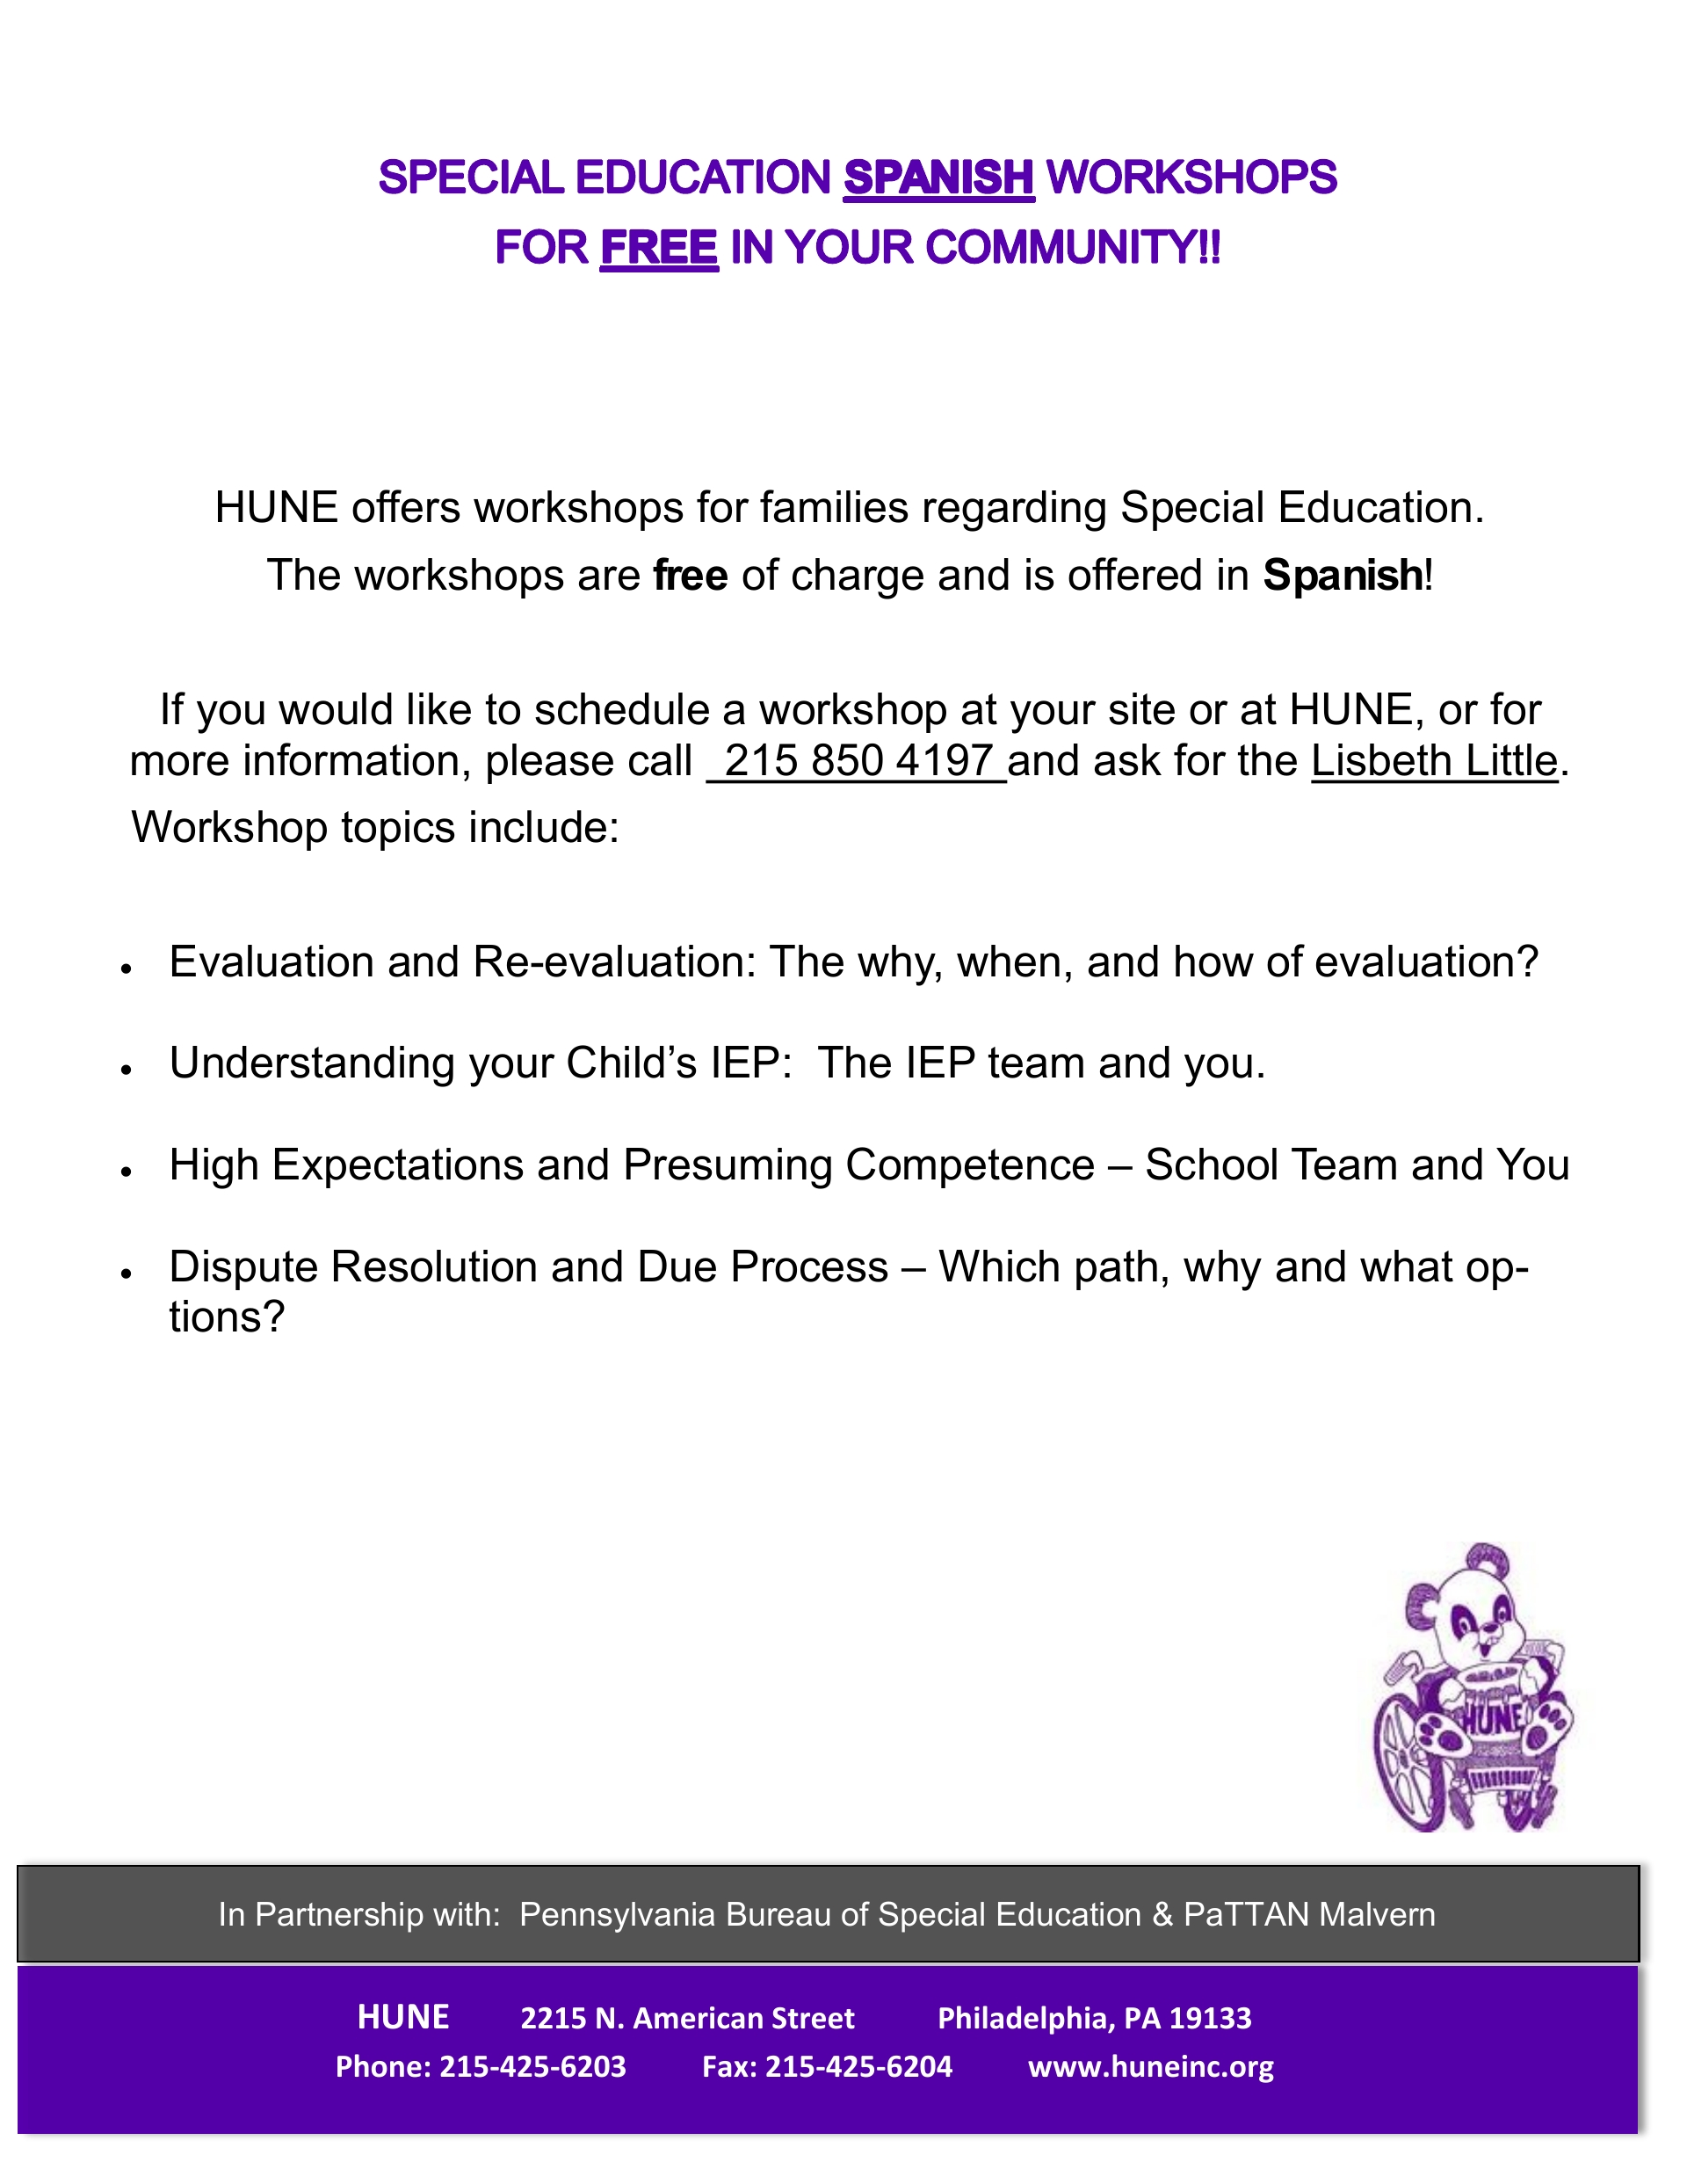 SPECIAL EDUCATION WORKSHOPS PARTNERS NEEDED